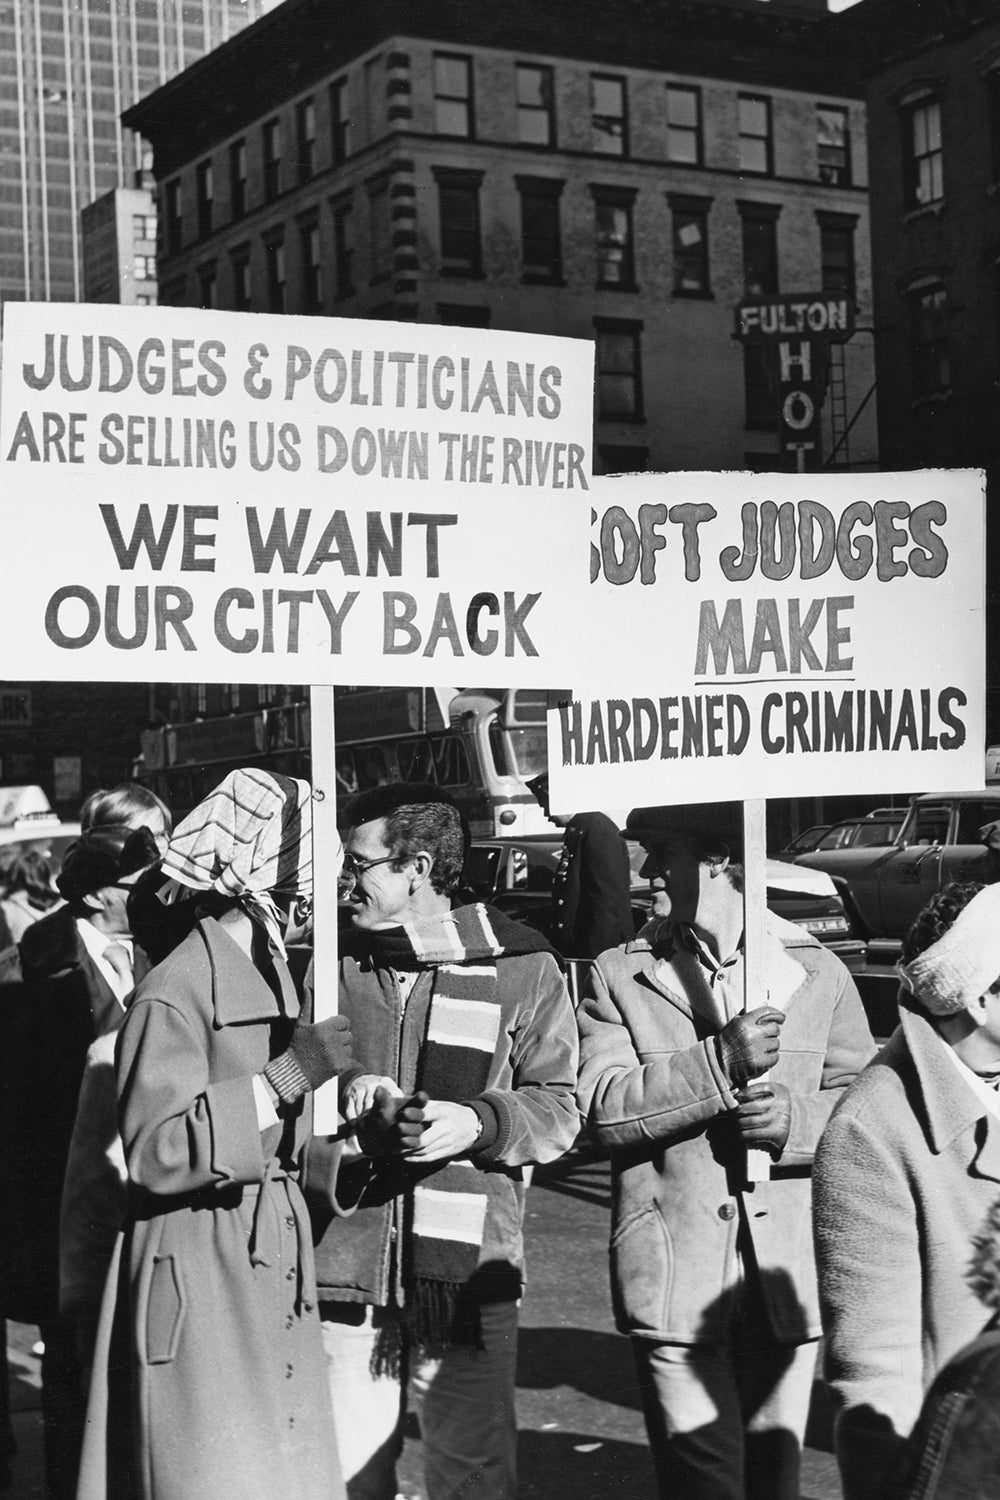 Protesters marching in the Times Square area demonstrating against the closure of entertainment and nightlife venues and the rise of illicit businesses, New York City, US, 1976. (Photo by Peter Keegan/Keystone/Hulton Archive/Getty Images)